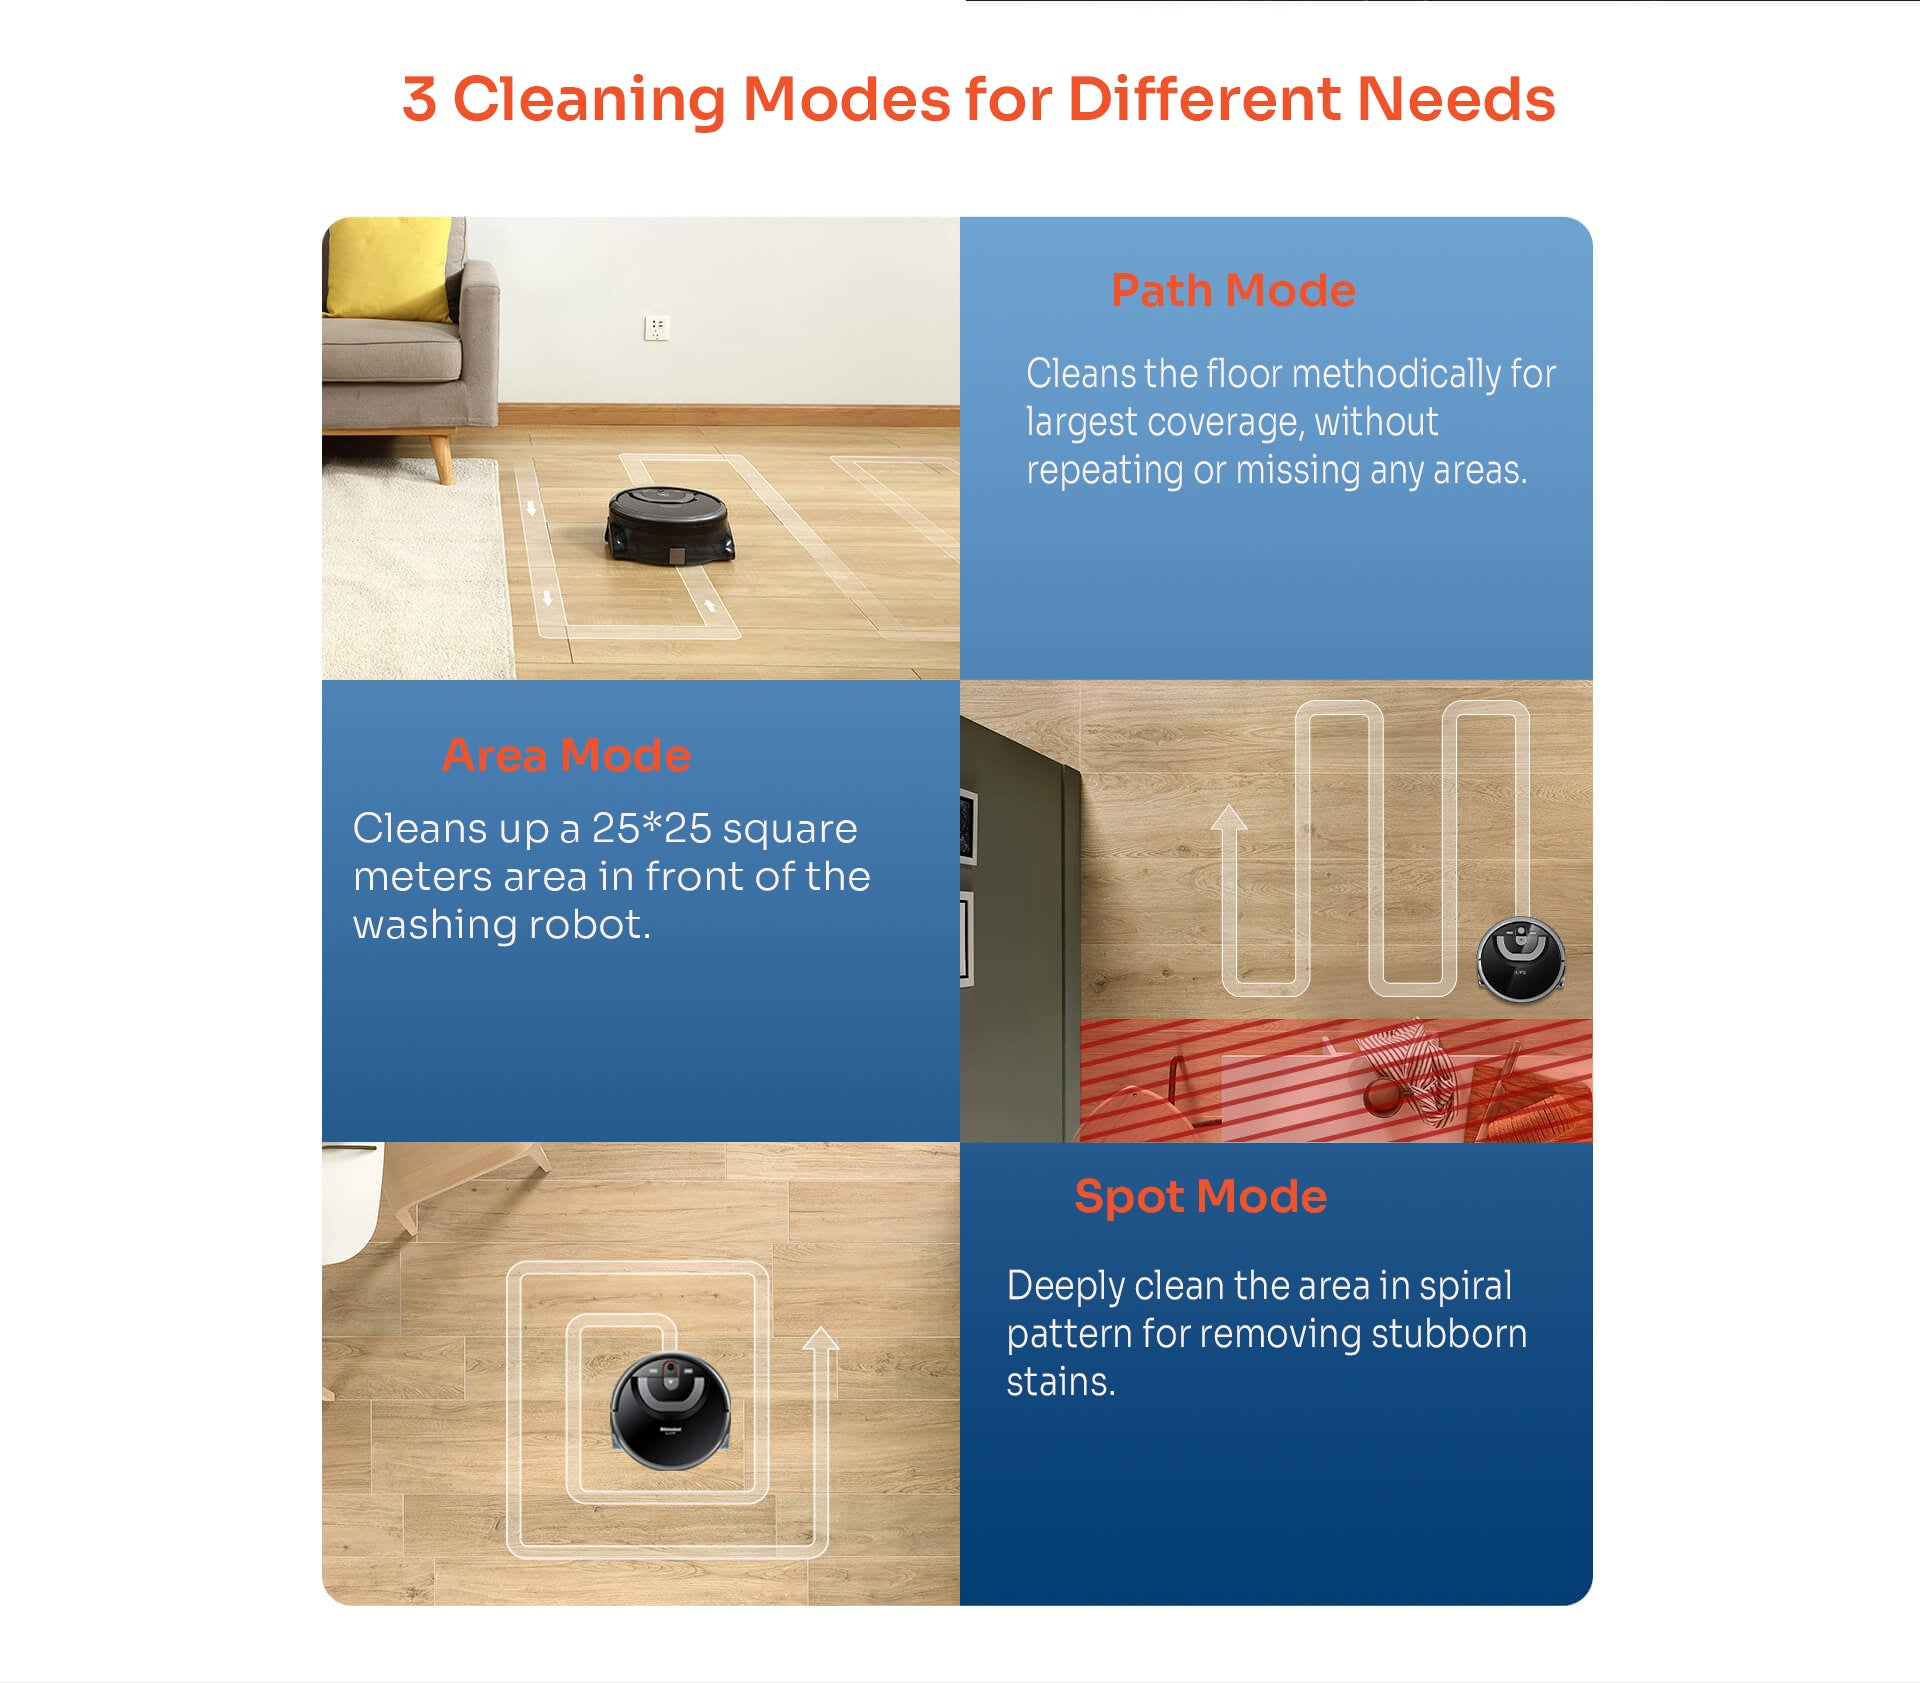 Three cleaning modes of different needs